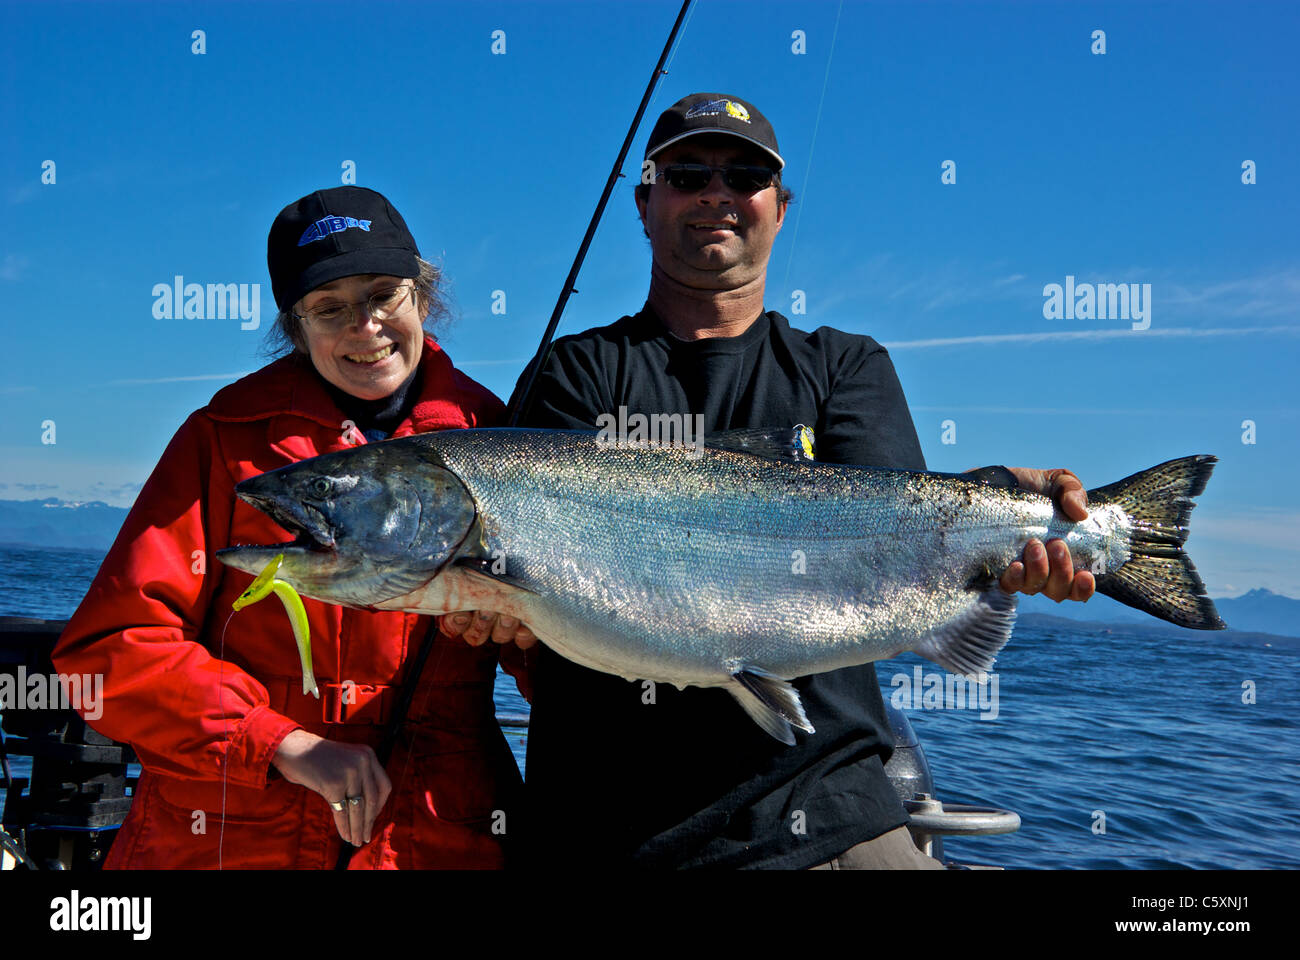 We have in stock frozen salted minnows year round - Female Sport Fishing Guide Holding Big Chinook Salmon In Open Pacific Ocean West Coast Vancouver Island